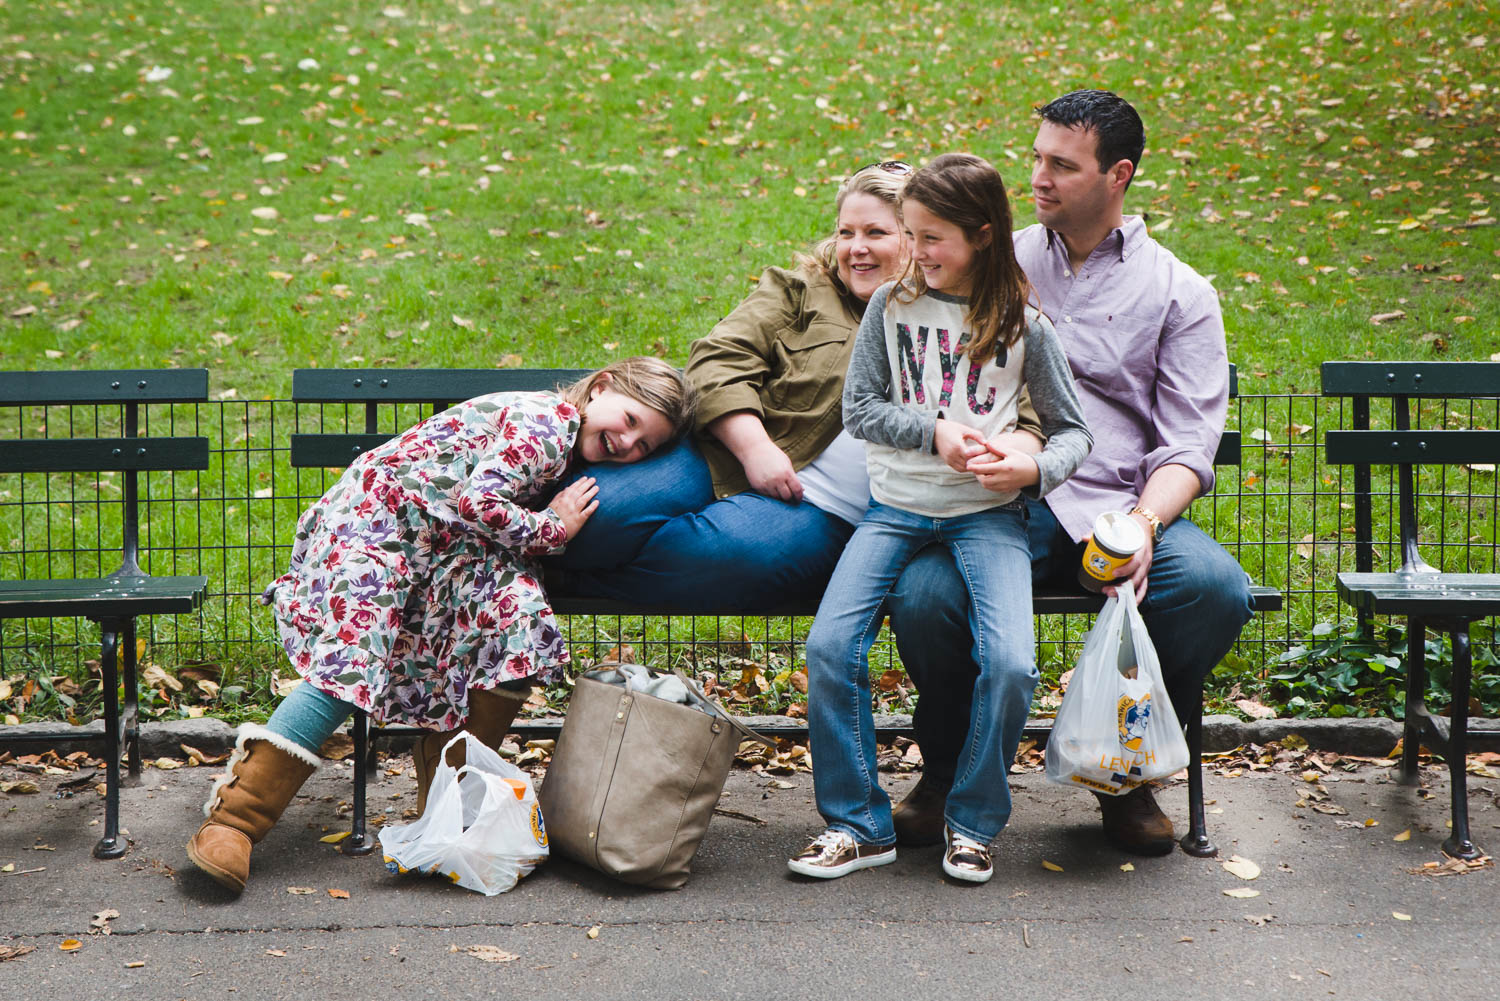 A family relaxes on a park bench in Central Park.